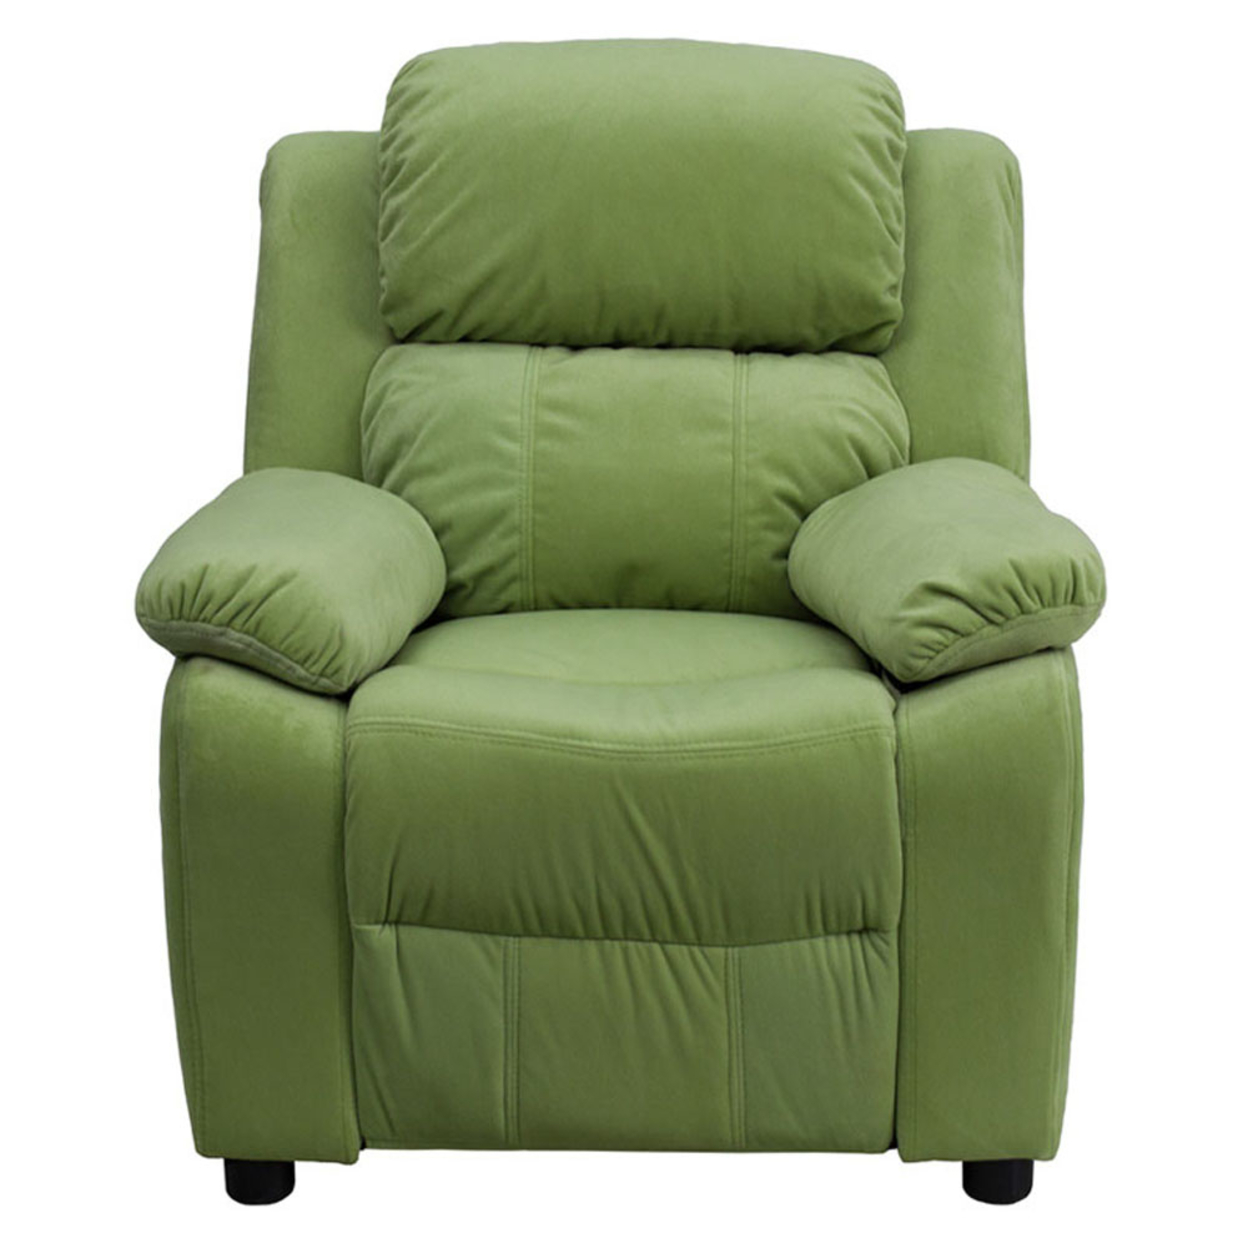 Flash Furniture Deluxe Heavily Padded Contemporary Avocado Microfiber Kids Recliner with Storage Arms [863-Bt-7985-Kid-Mic-Avo-Gg] 59e46012e224613cbd38439a